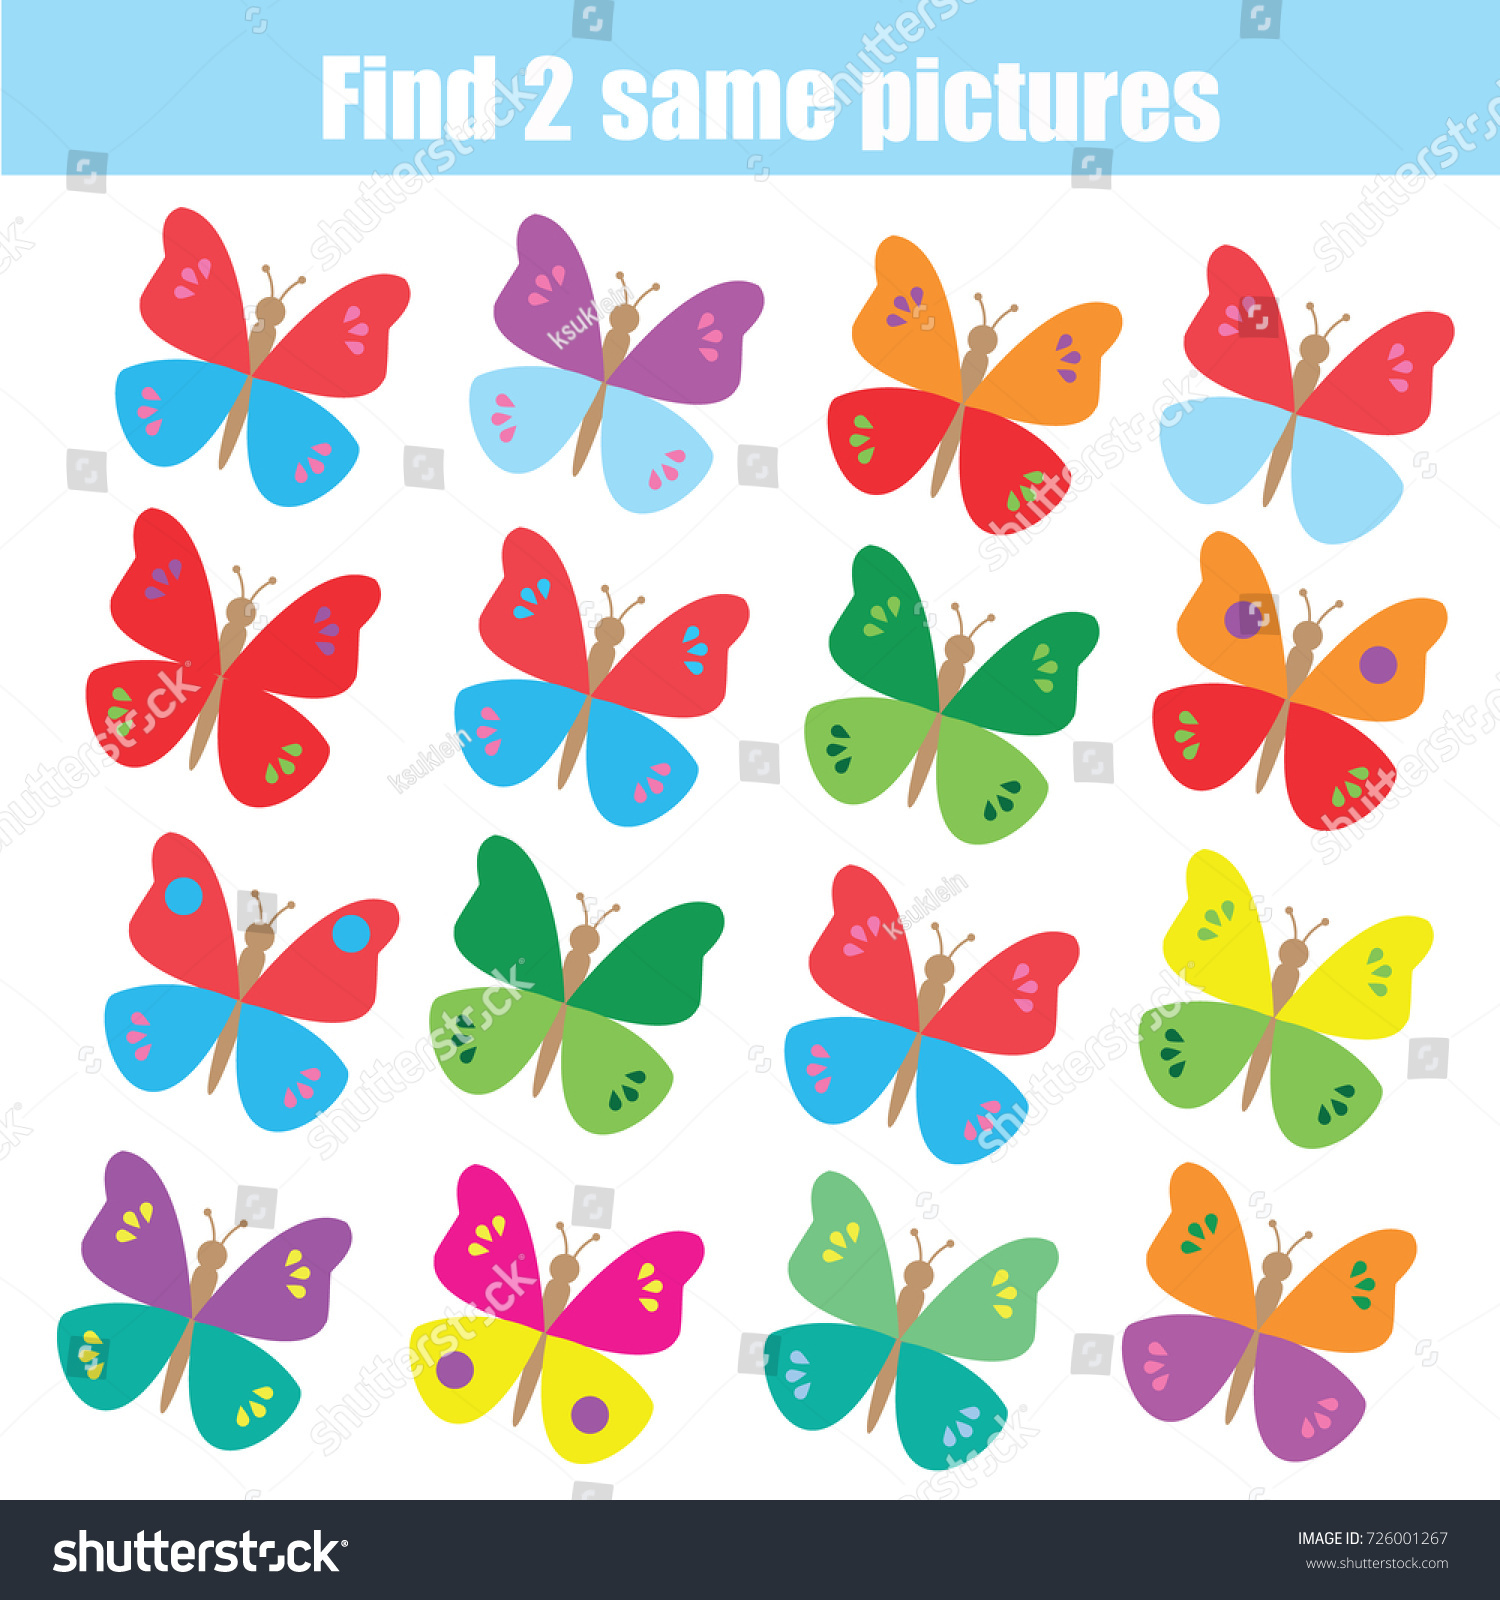 Uncategorized Images Of Butterflies For Children find same pictures children educational game stock vector the equal pairs of butterflies kids activity